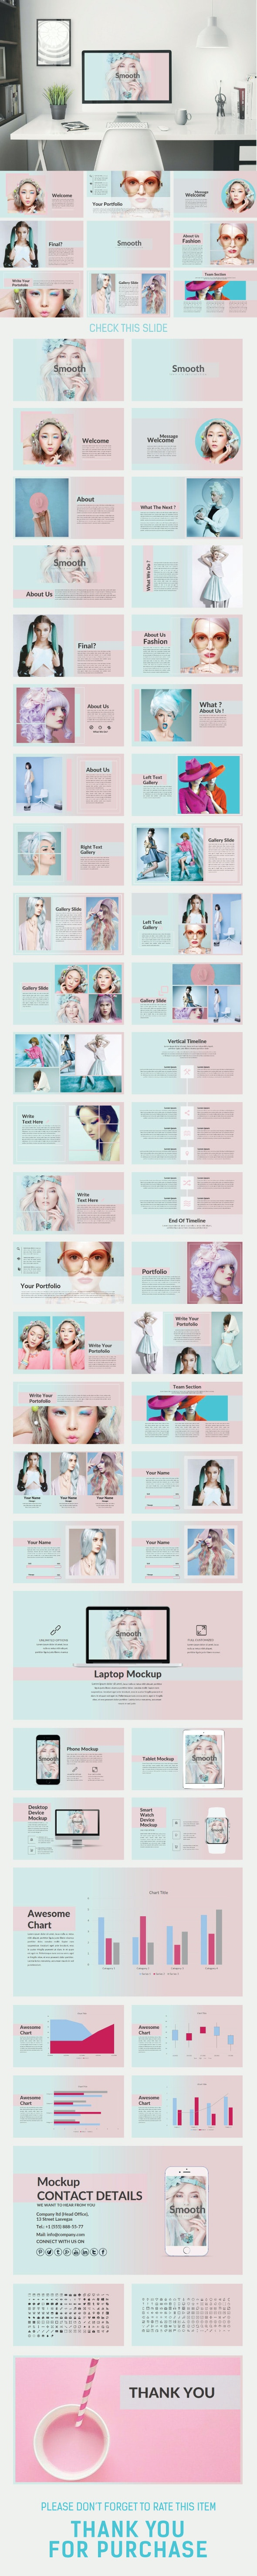 Smooth Powerpoint Template - Creative PowerPoint Templates